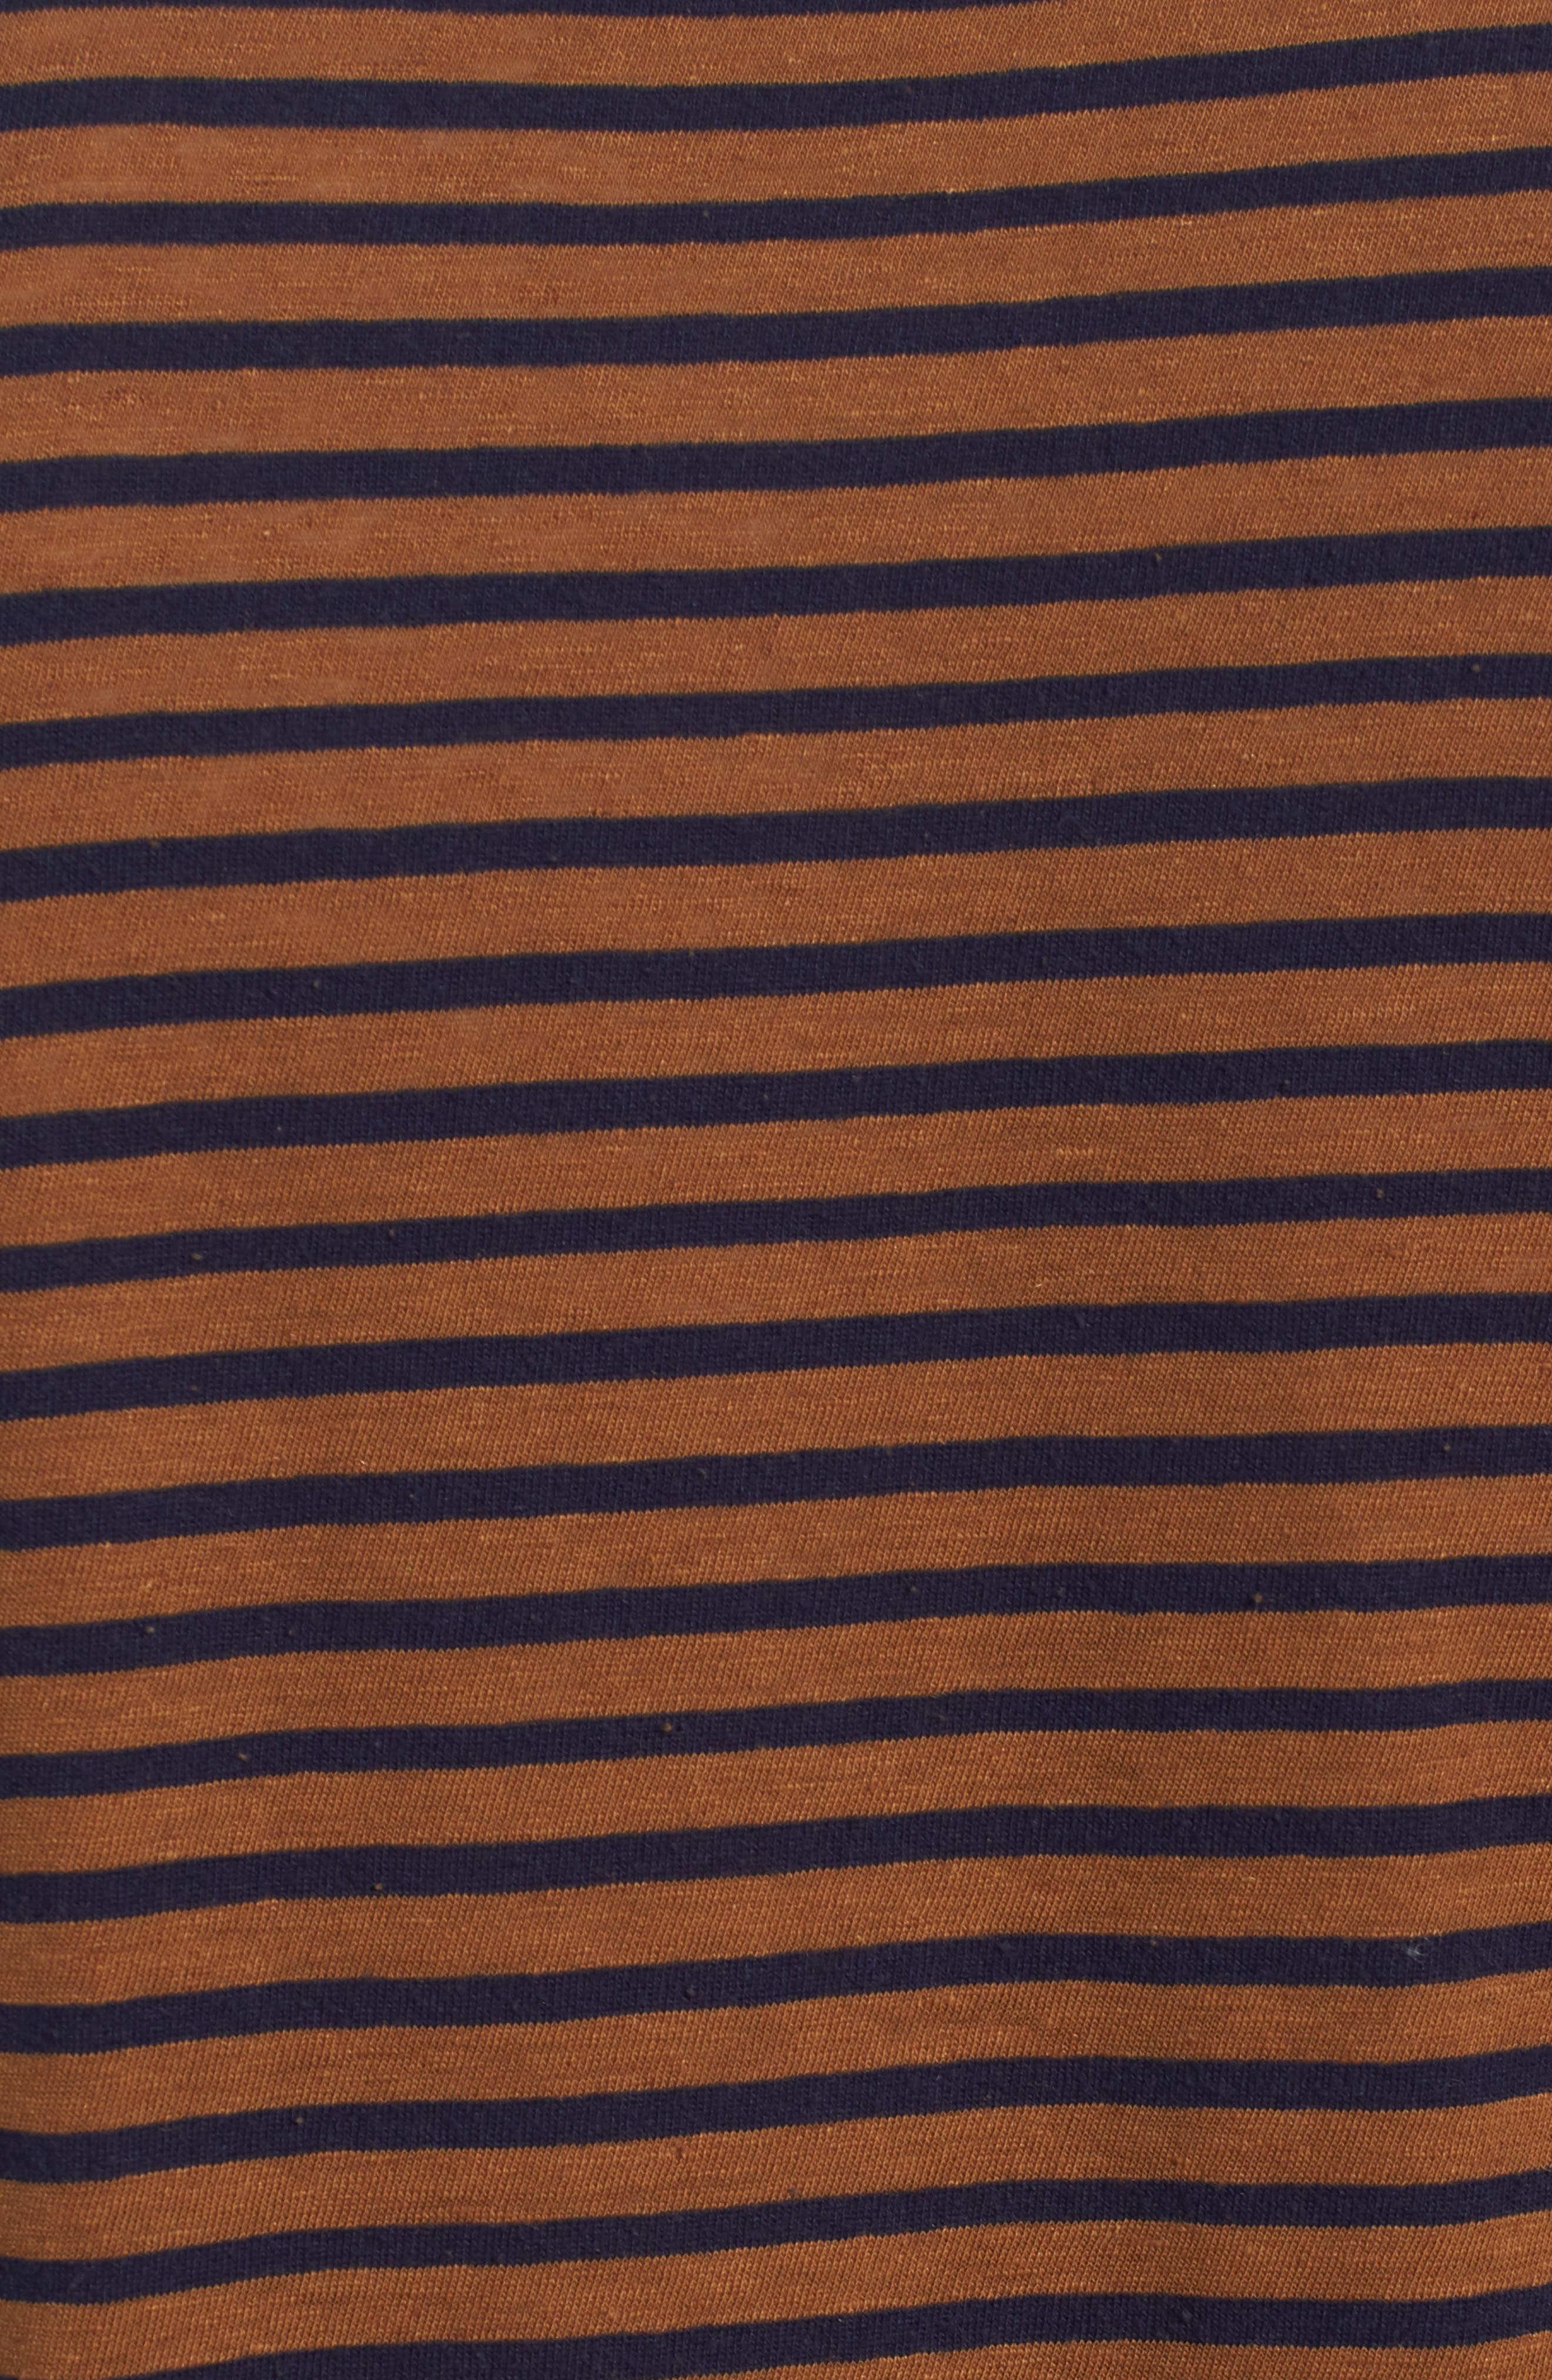 Theo Striped Cotton & Linen T-Shirt,                             Alternate thumbnail 5, color,                             BRONZE CLAY/ NAVY